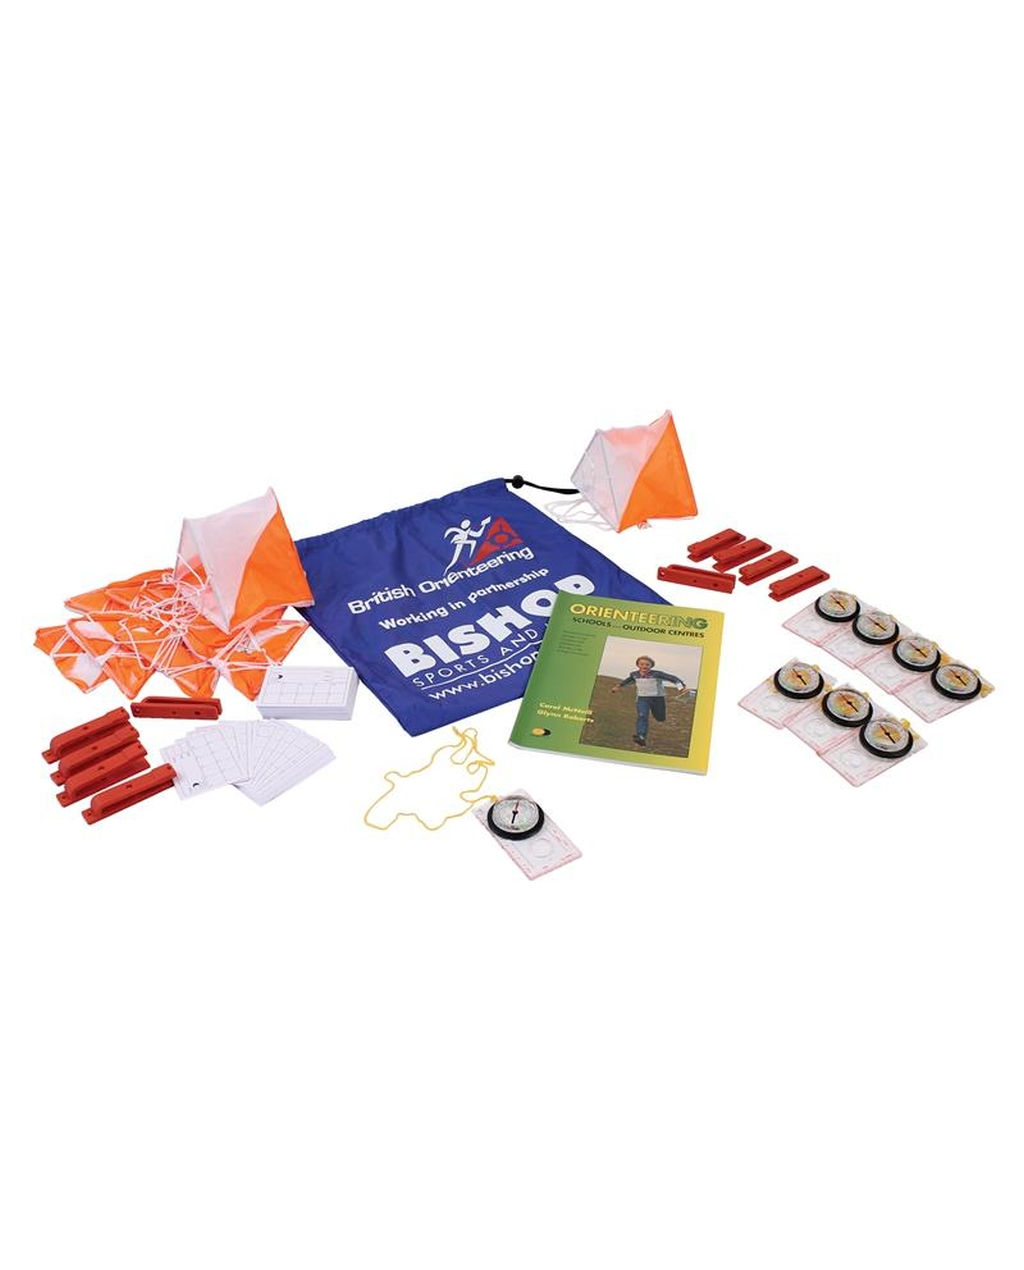 Orienteering Kit With Resource